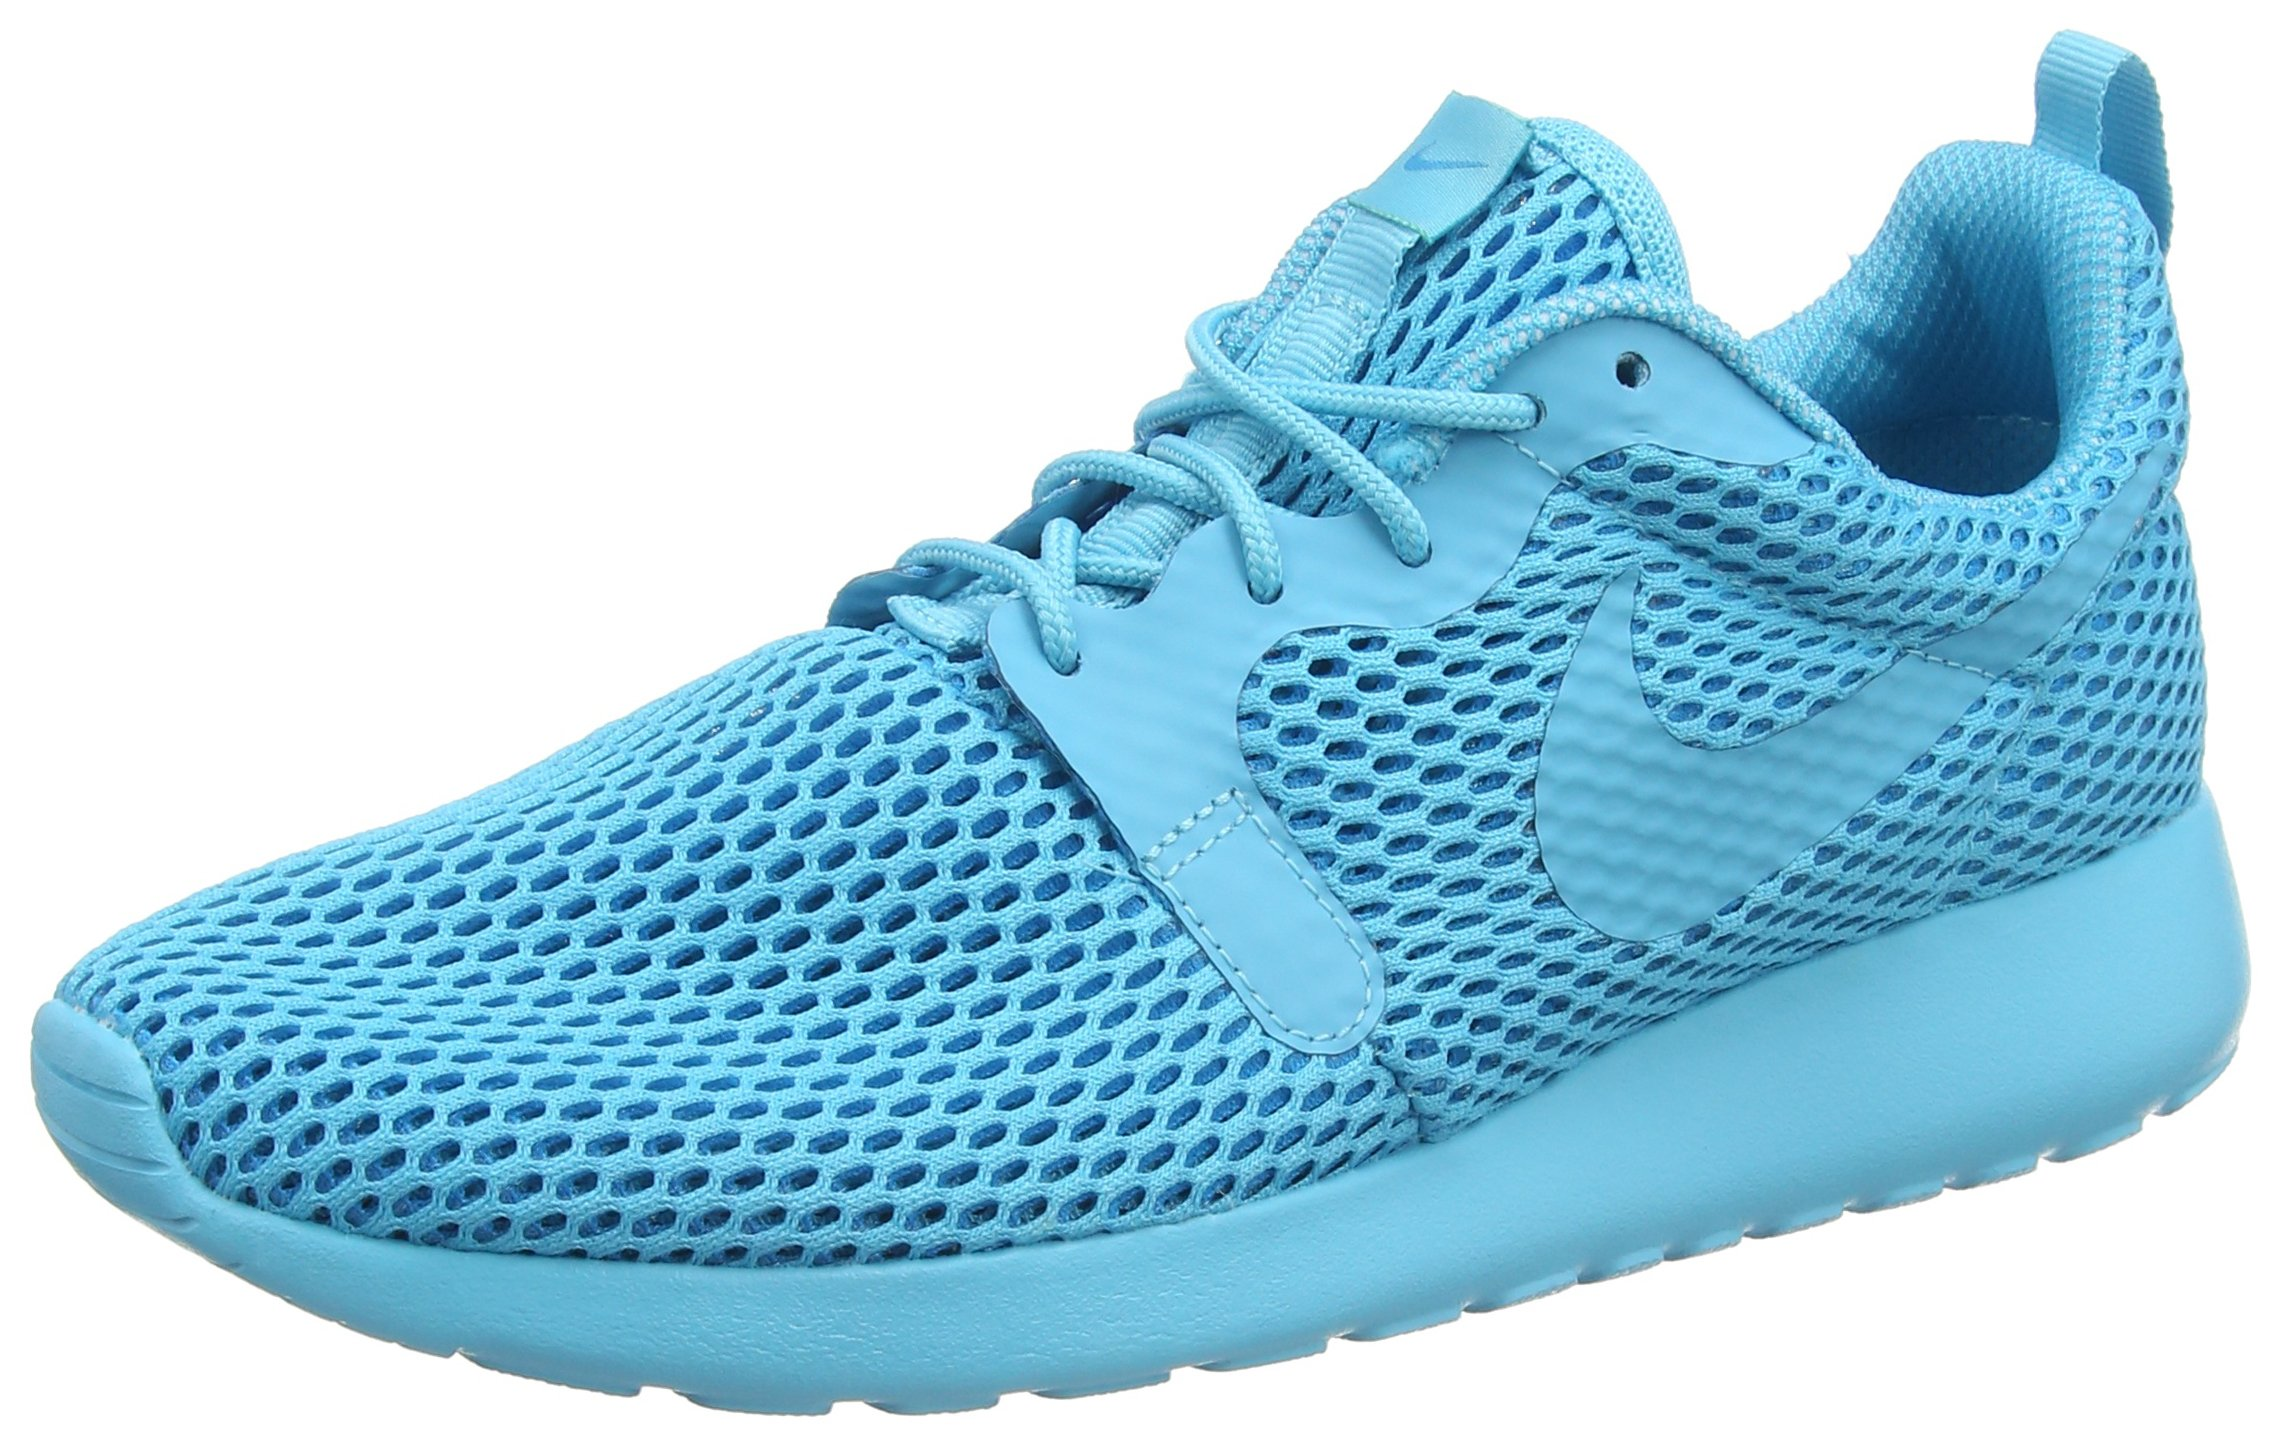 Nike Womens Roshe One Hyperfuse Breathe Blue Mesh Trainers 8 US